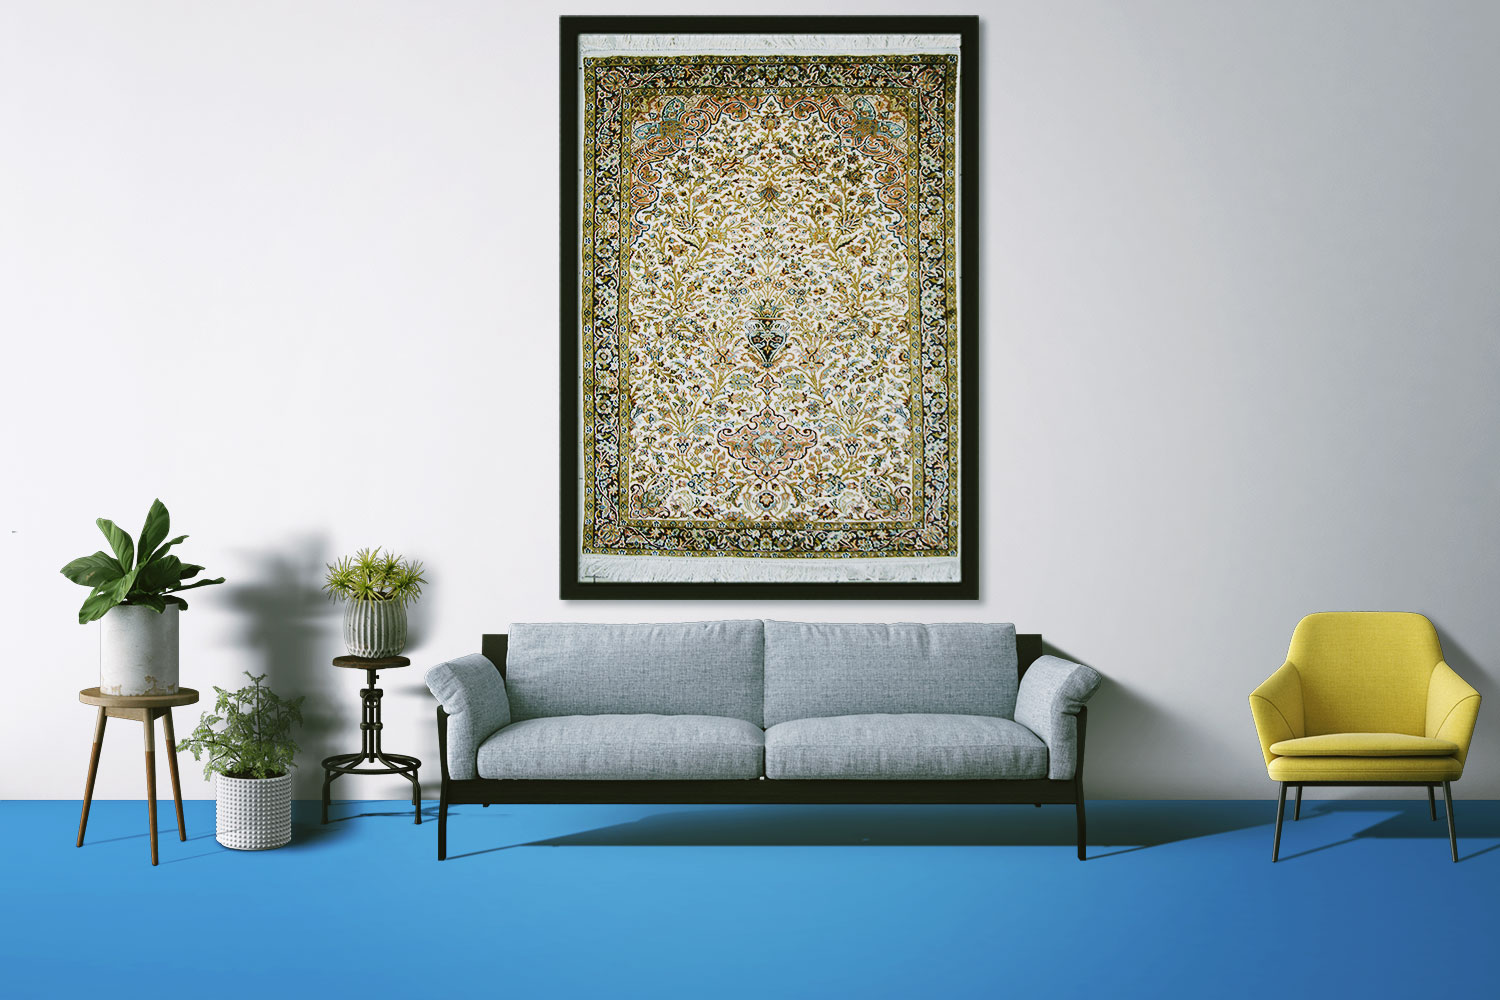 Flower Vase Wall Hanging Carpet